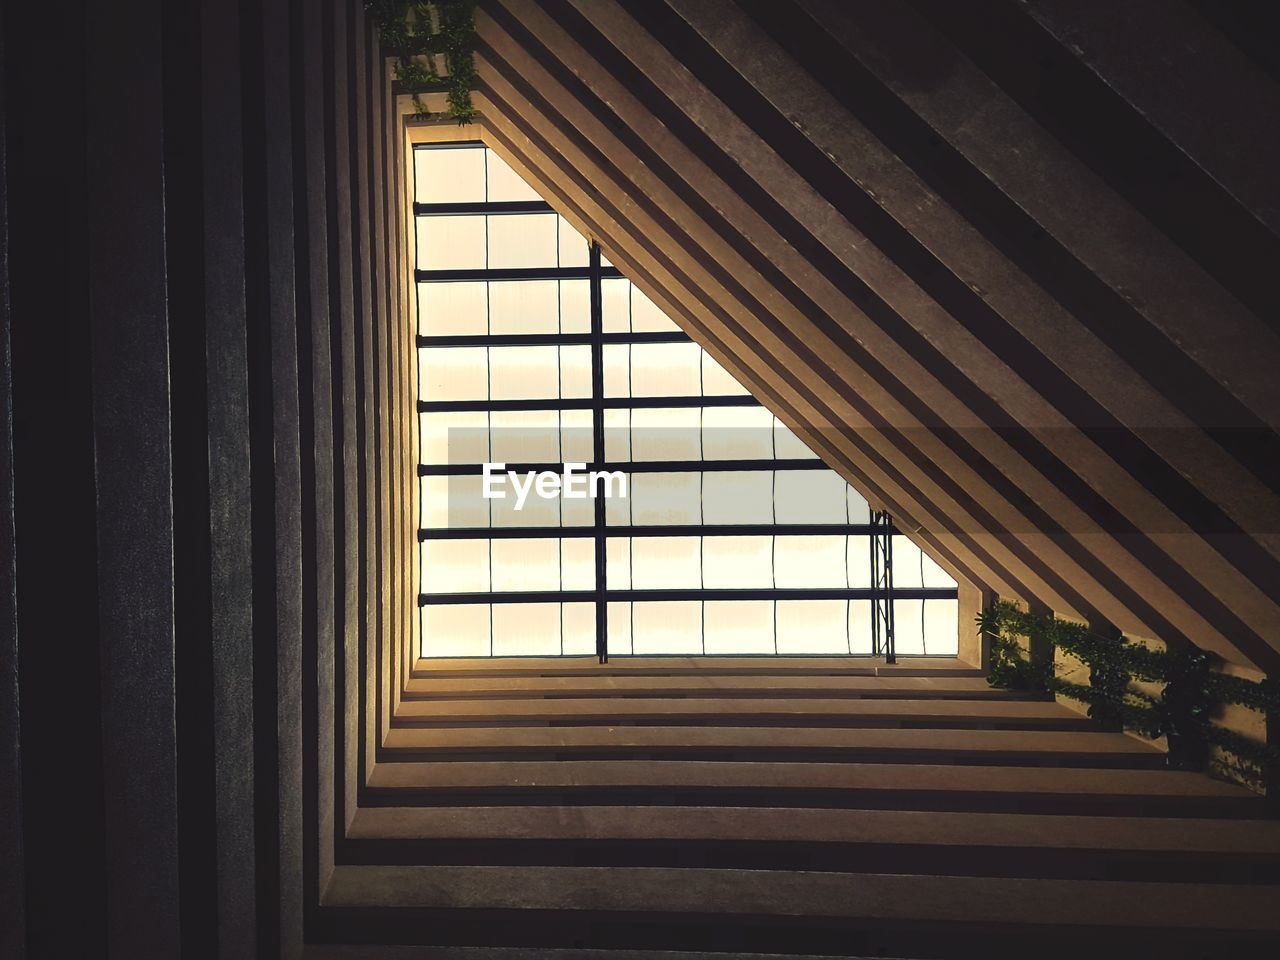 architecture, indoors, window, built structure, curtain, no people, day, building, sunlight, home interior, pattern, wood - material, nature, house, glass - material, absence, direction, shadow, empty, ceiling